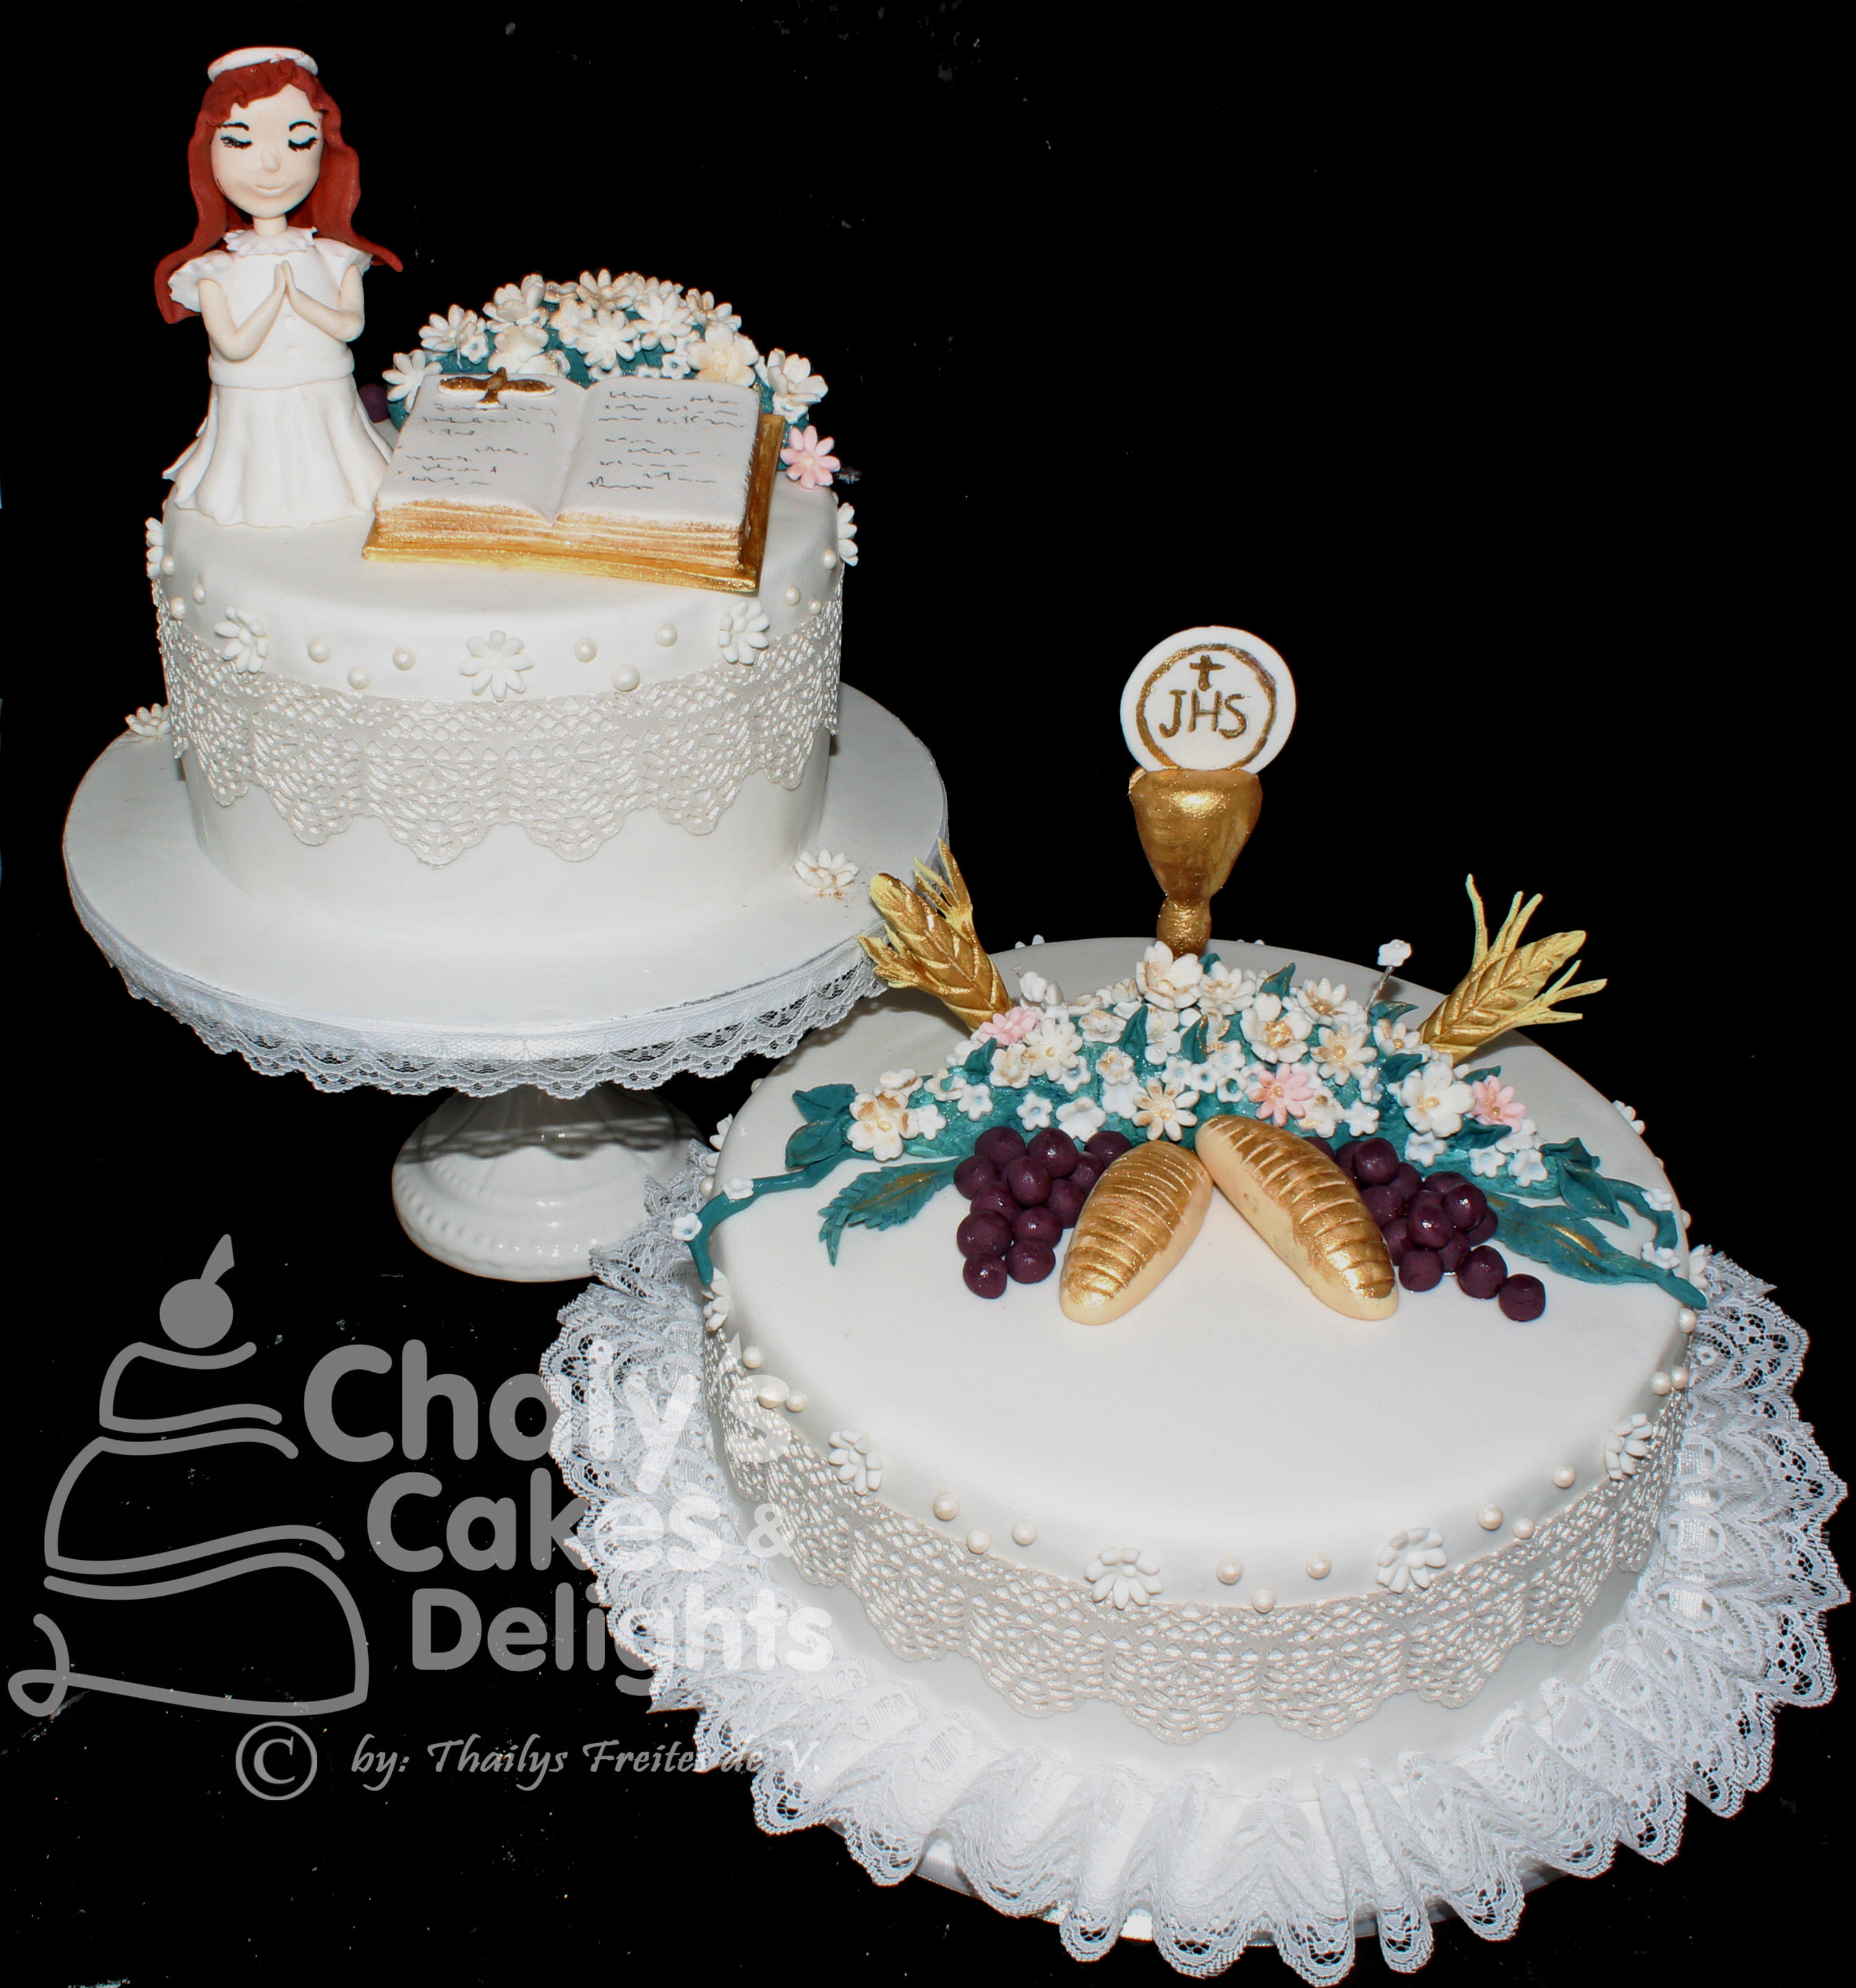 Welcome To Chalys Cakes And Delights Cakes Pretoria Best Cakes